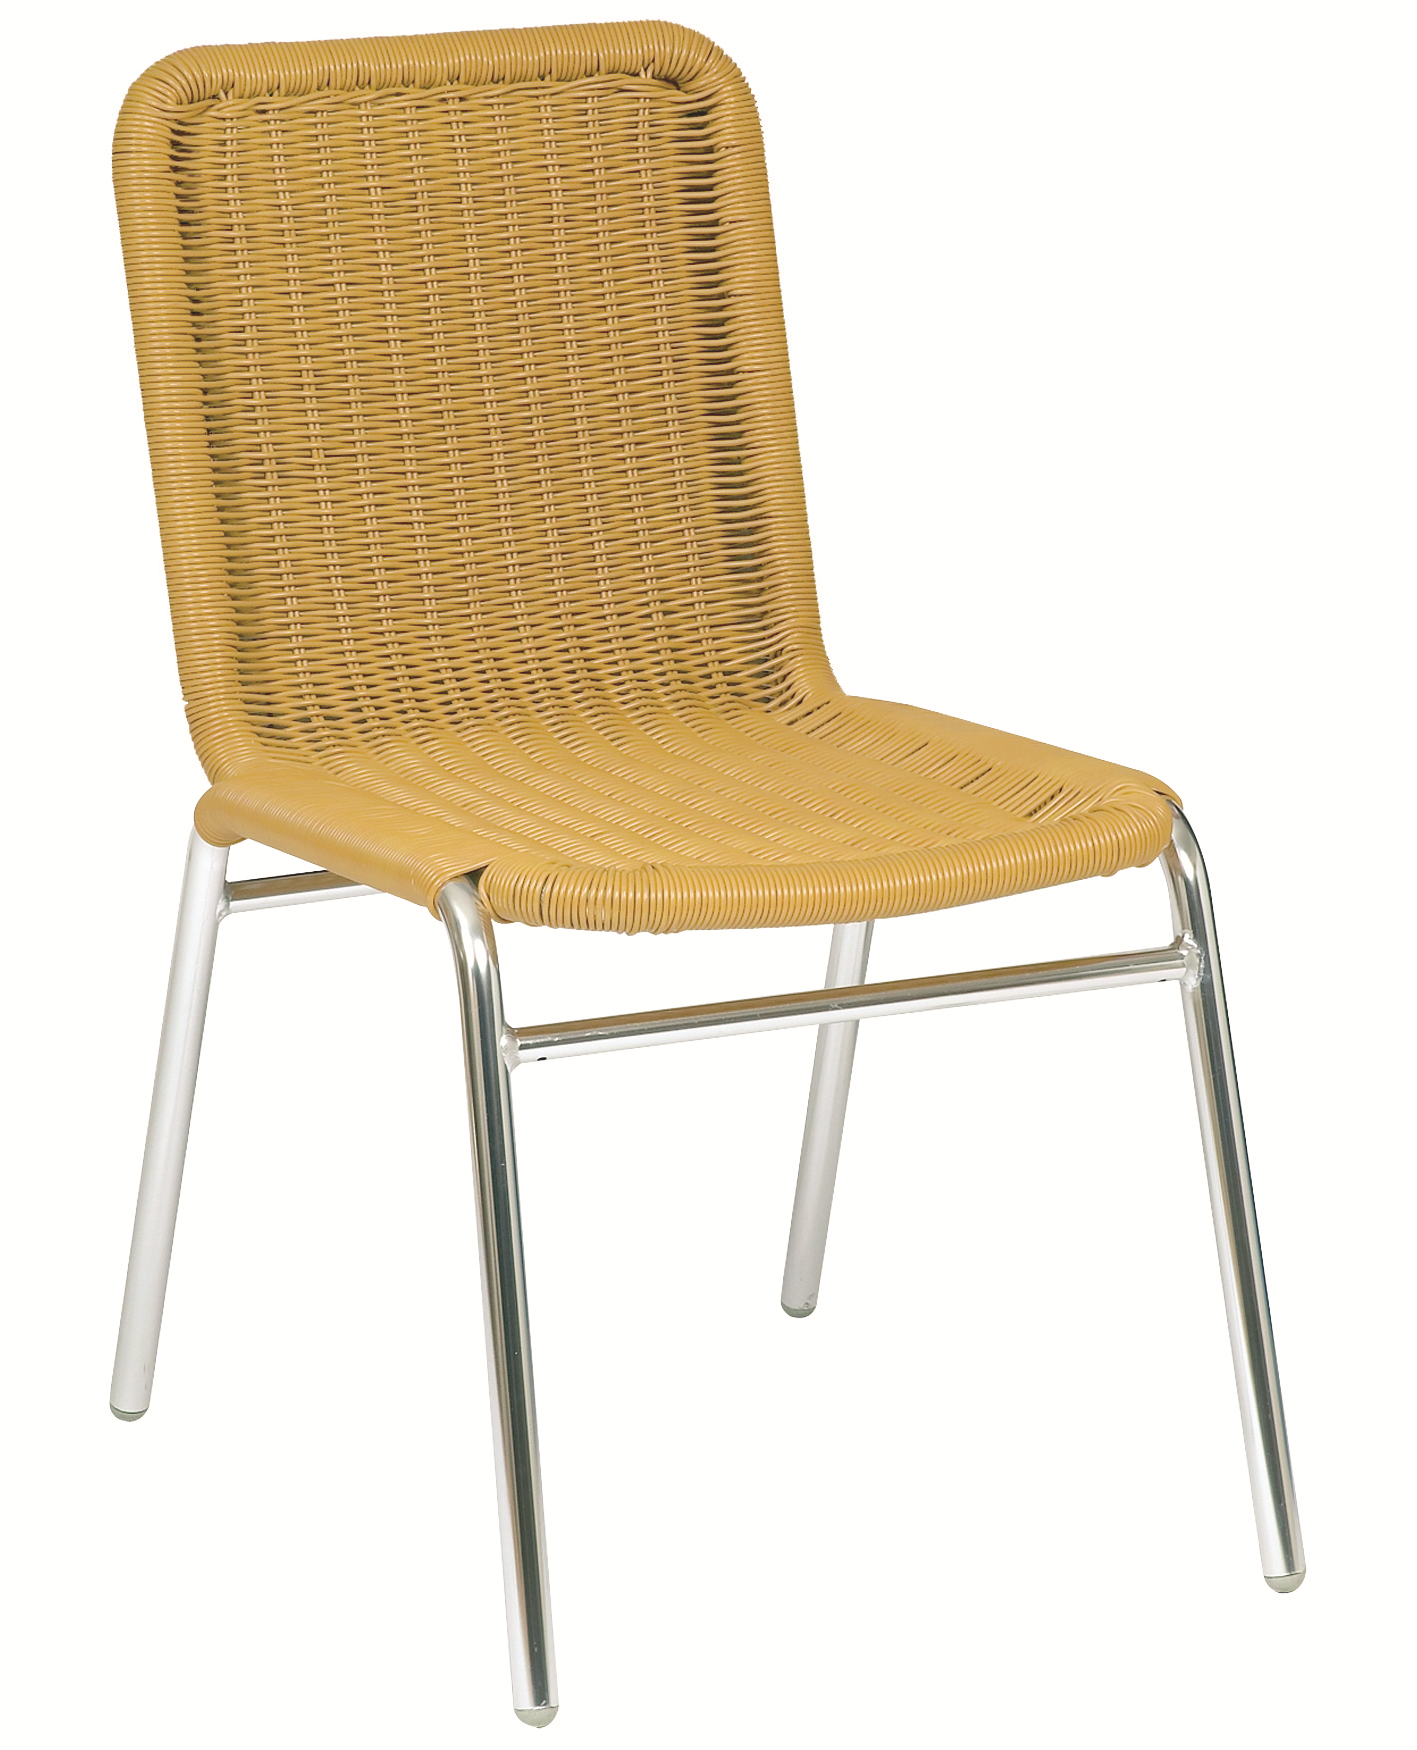 CATALINA STK SIDE CHAIR WEAVE